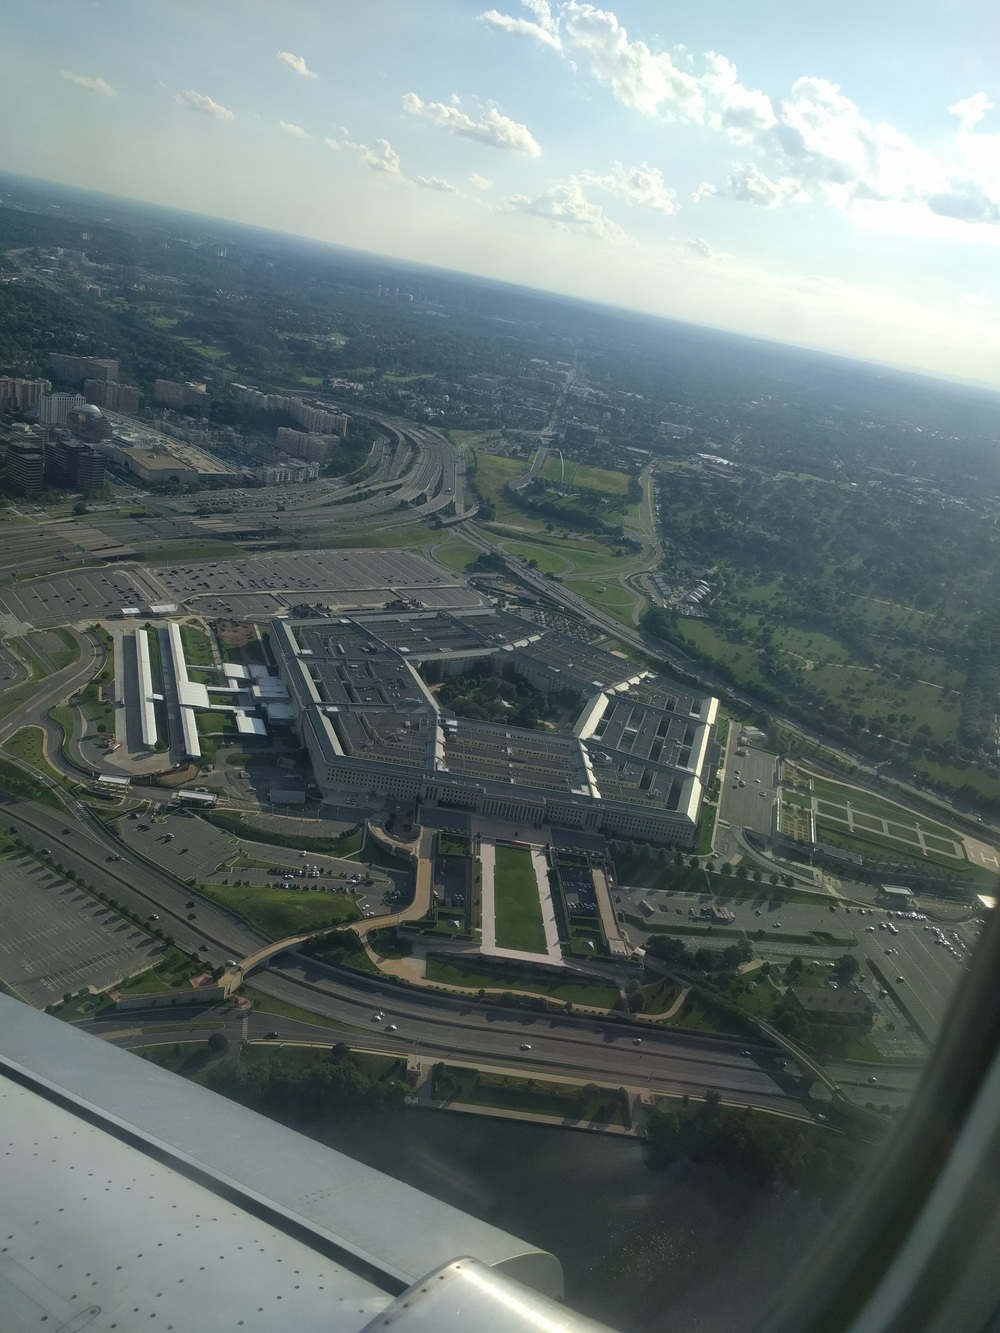 We saw the Pentagon as we were flying out!